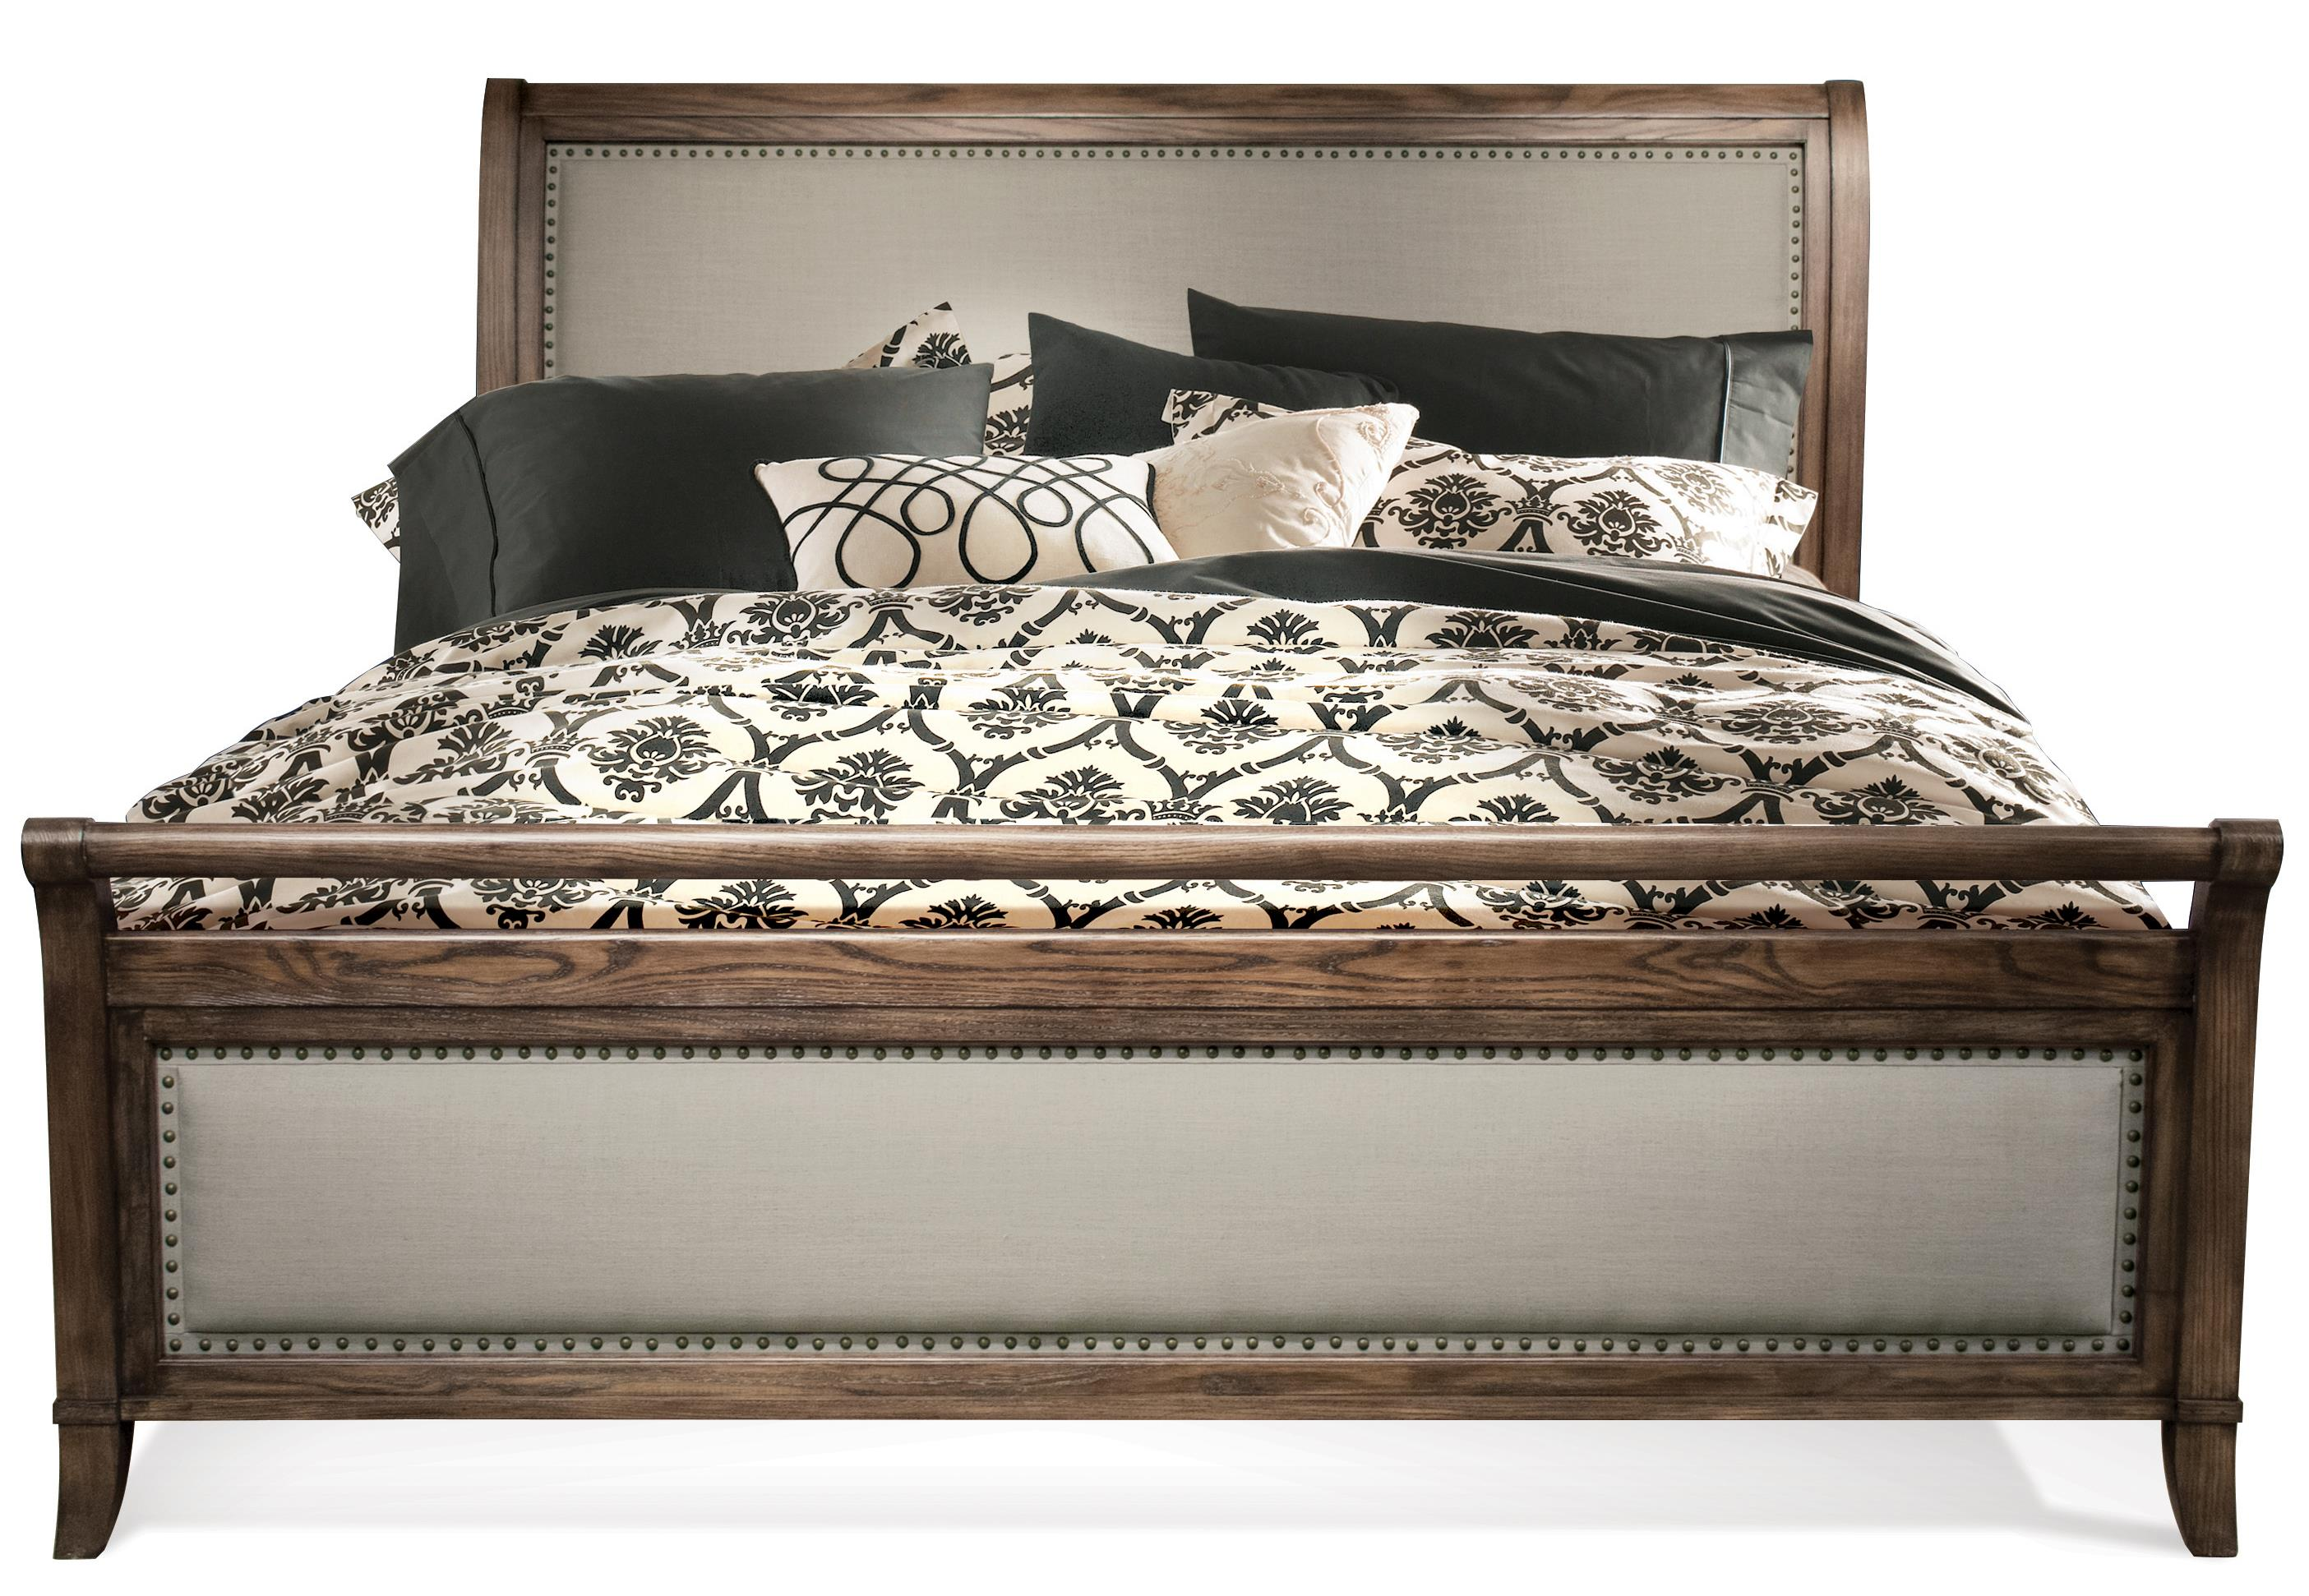 Riverside Furniture Belmeade King Sleigh Upholstered Bed - Item Number: 15884+85+76